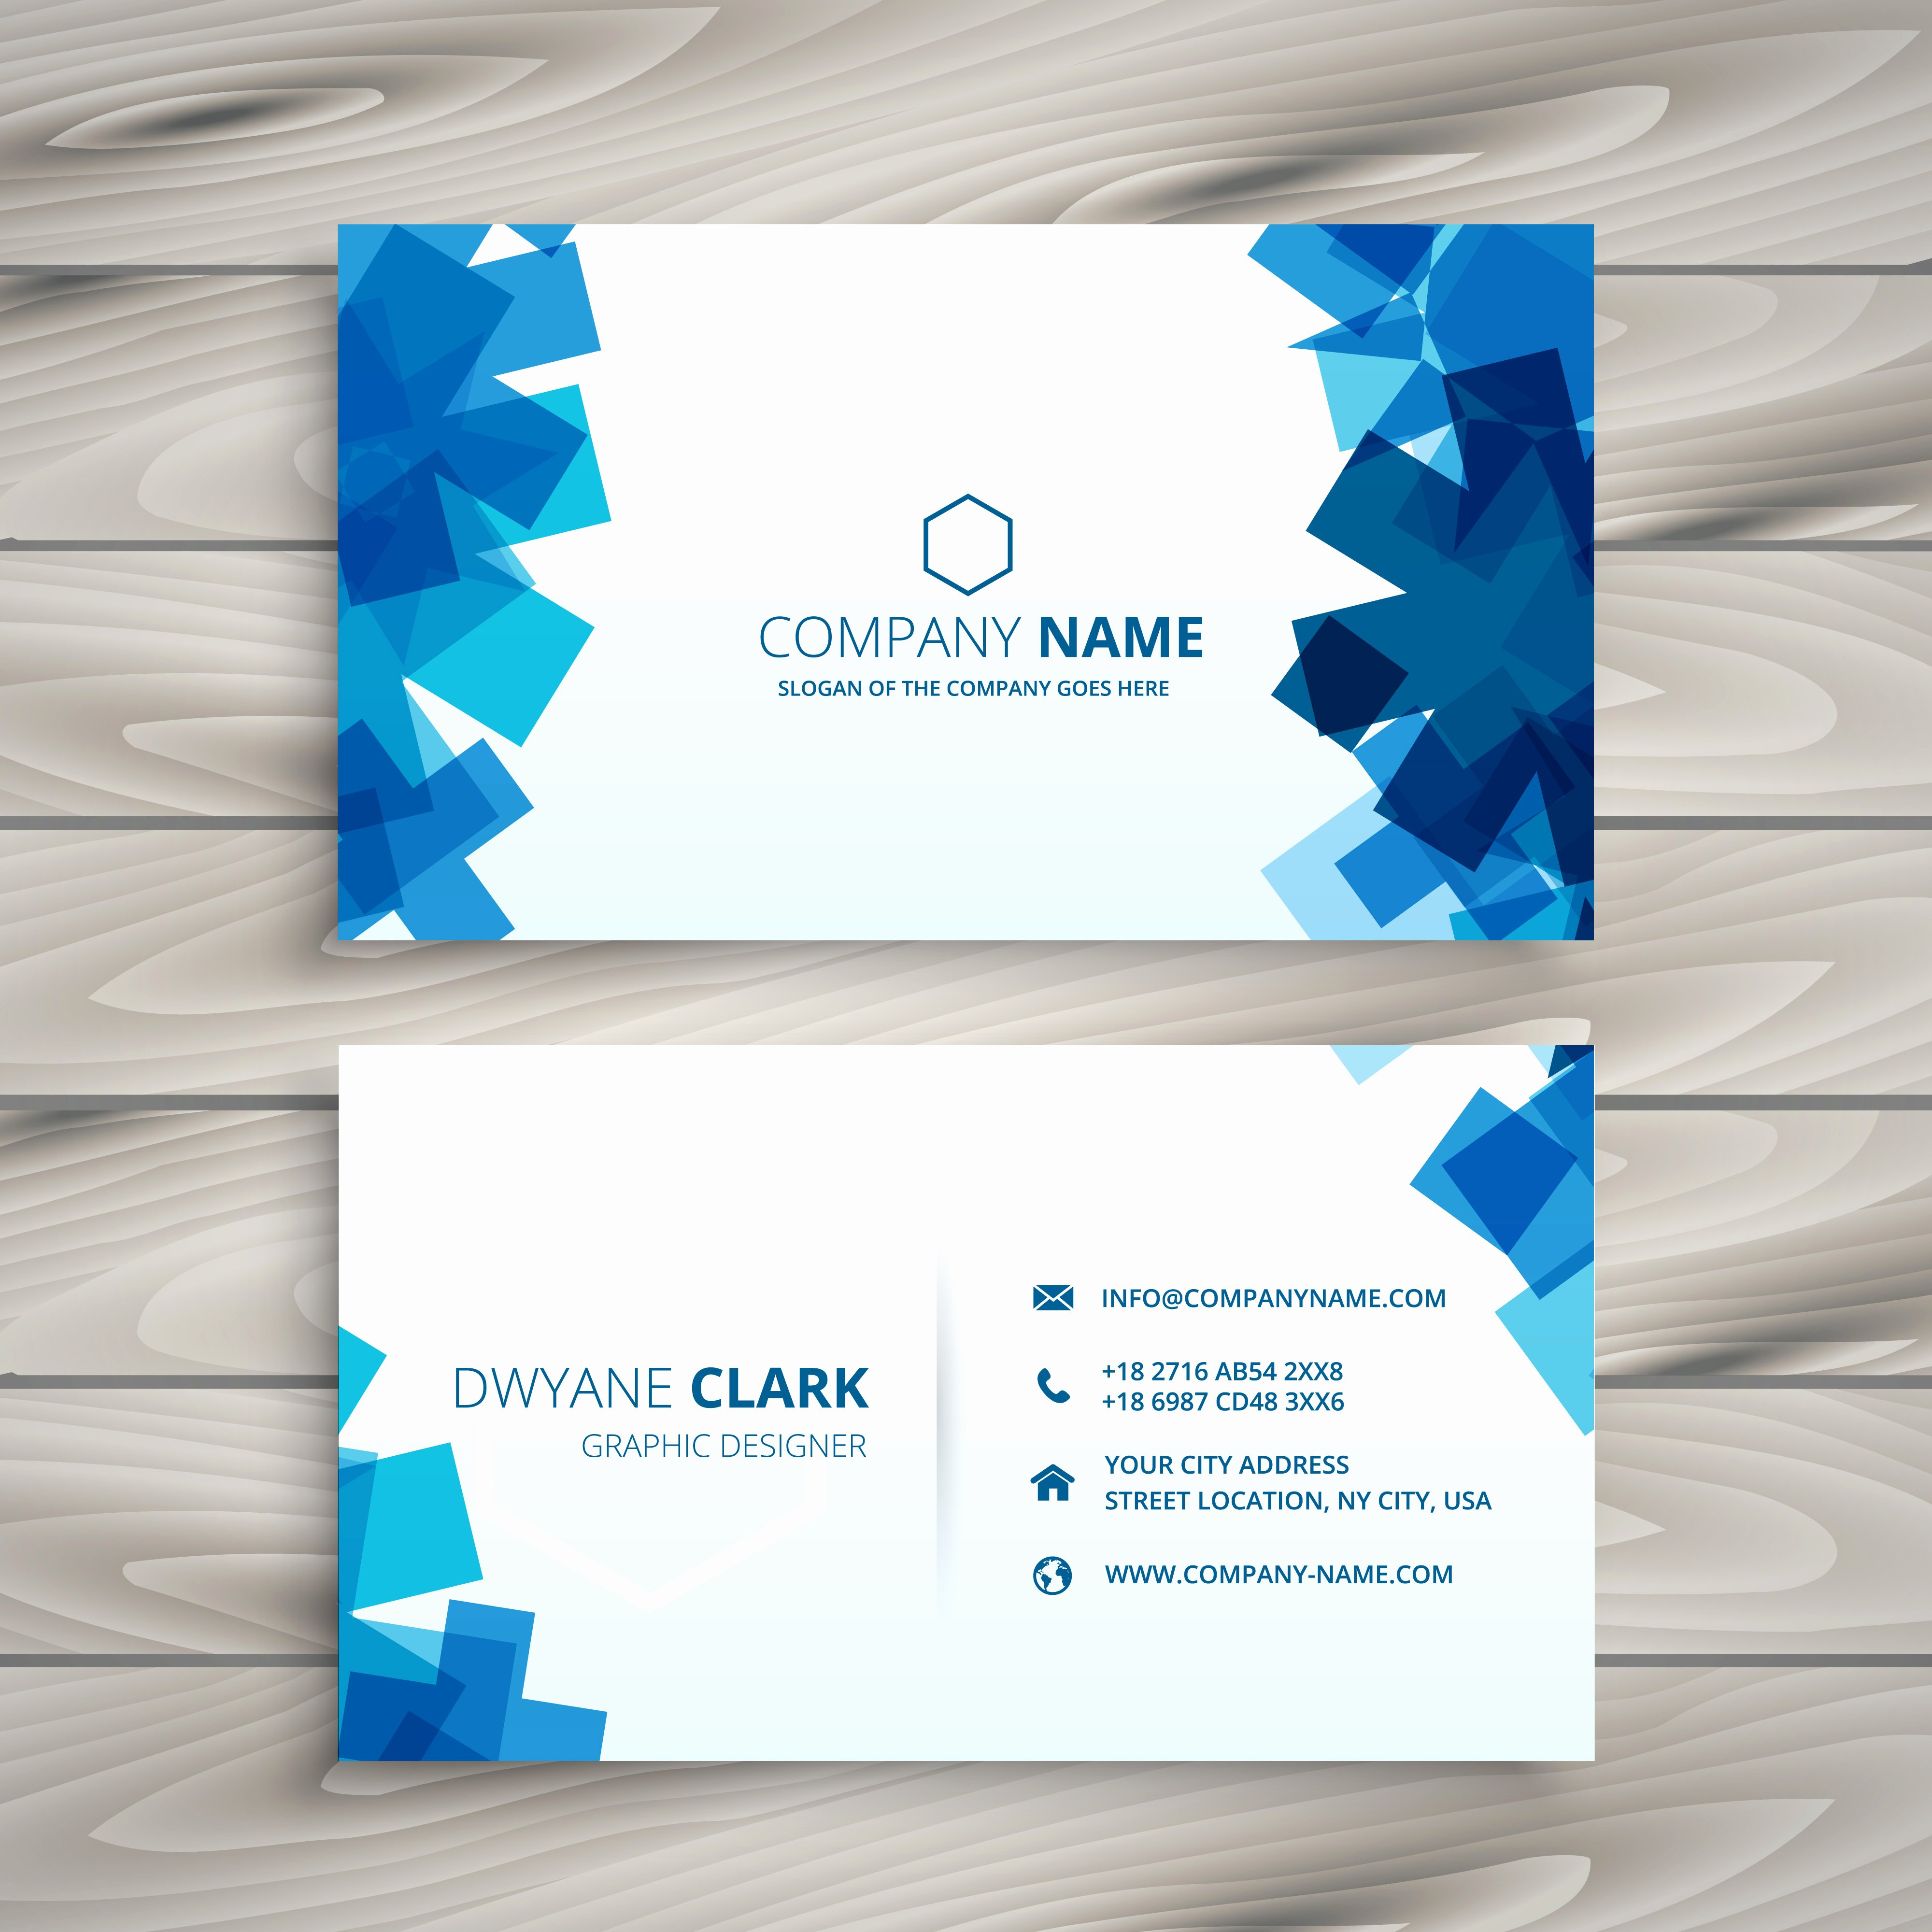 Business Card Template Vector Awesome Abstract Blue Shapes Business Card Template Vector Design